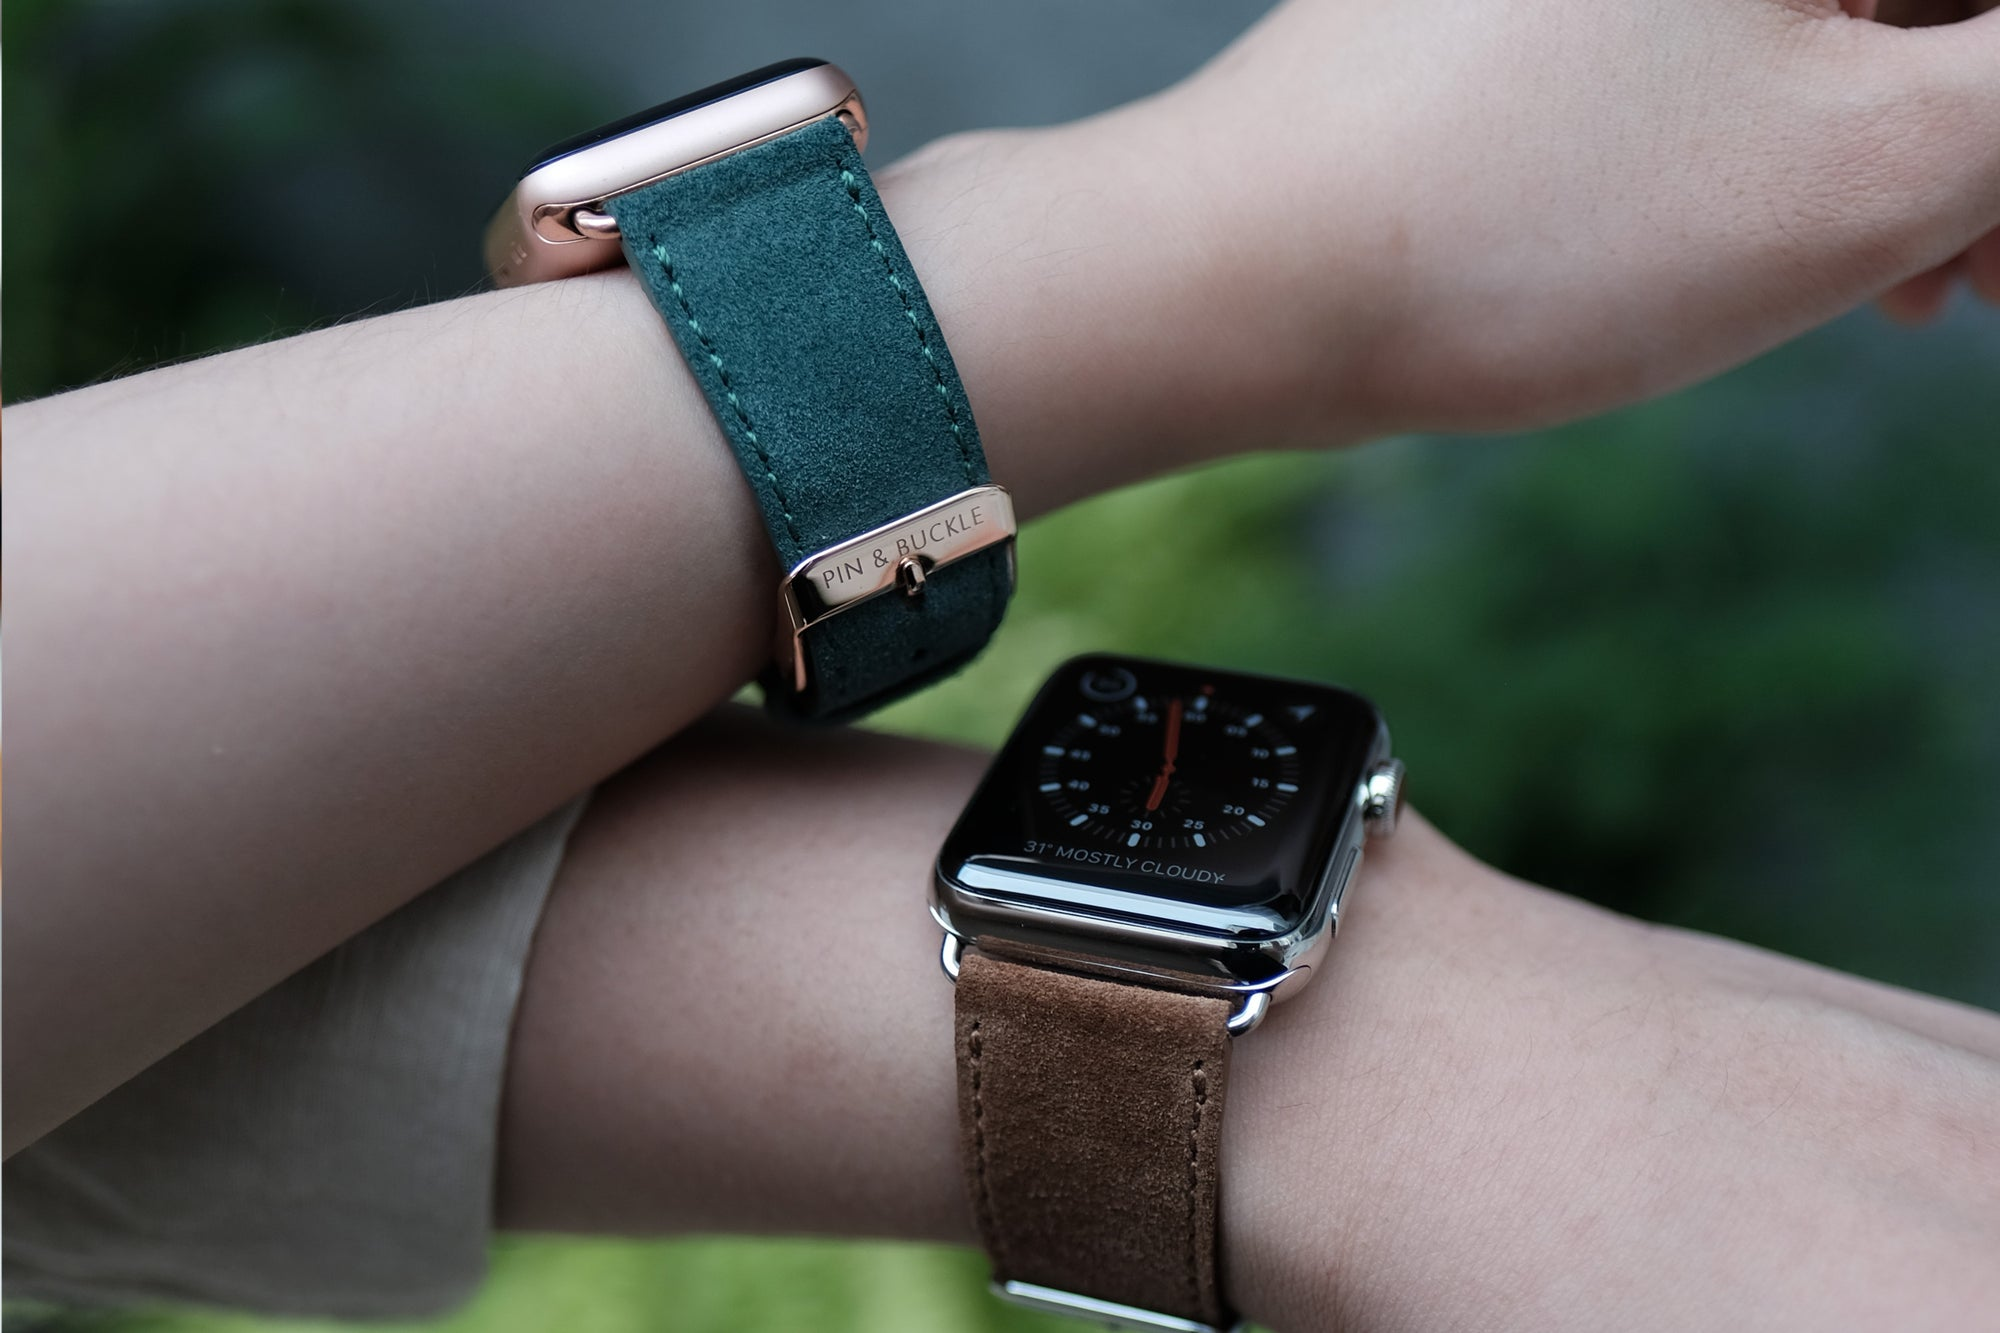 Pin and Buckle Apple Watch Bands - Velour - Suede Leather Apple Watch Band - Pine and Cognac